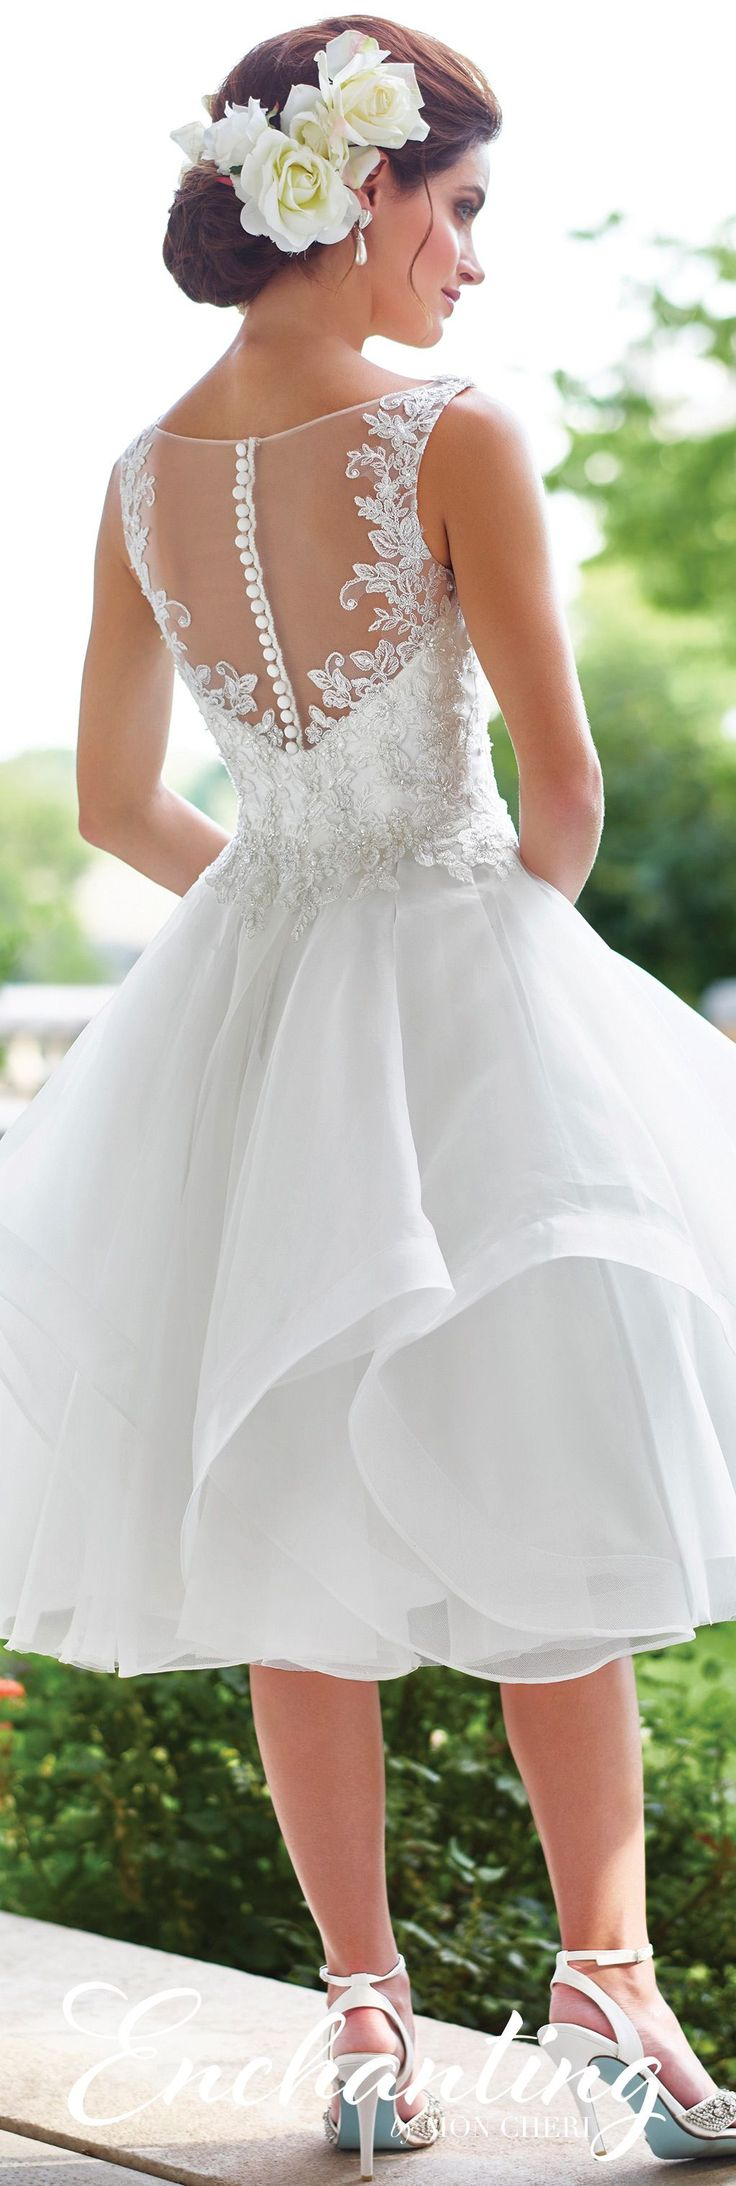 best 25+ short wedding dresses ideas on pinterest | white short